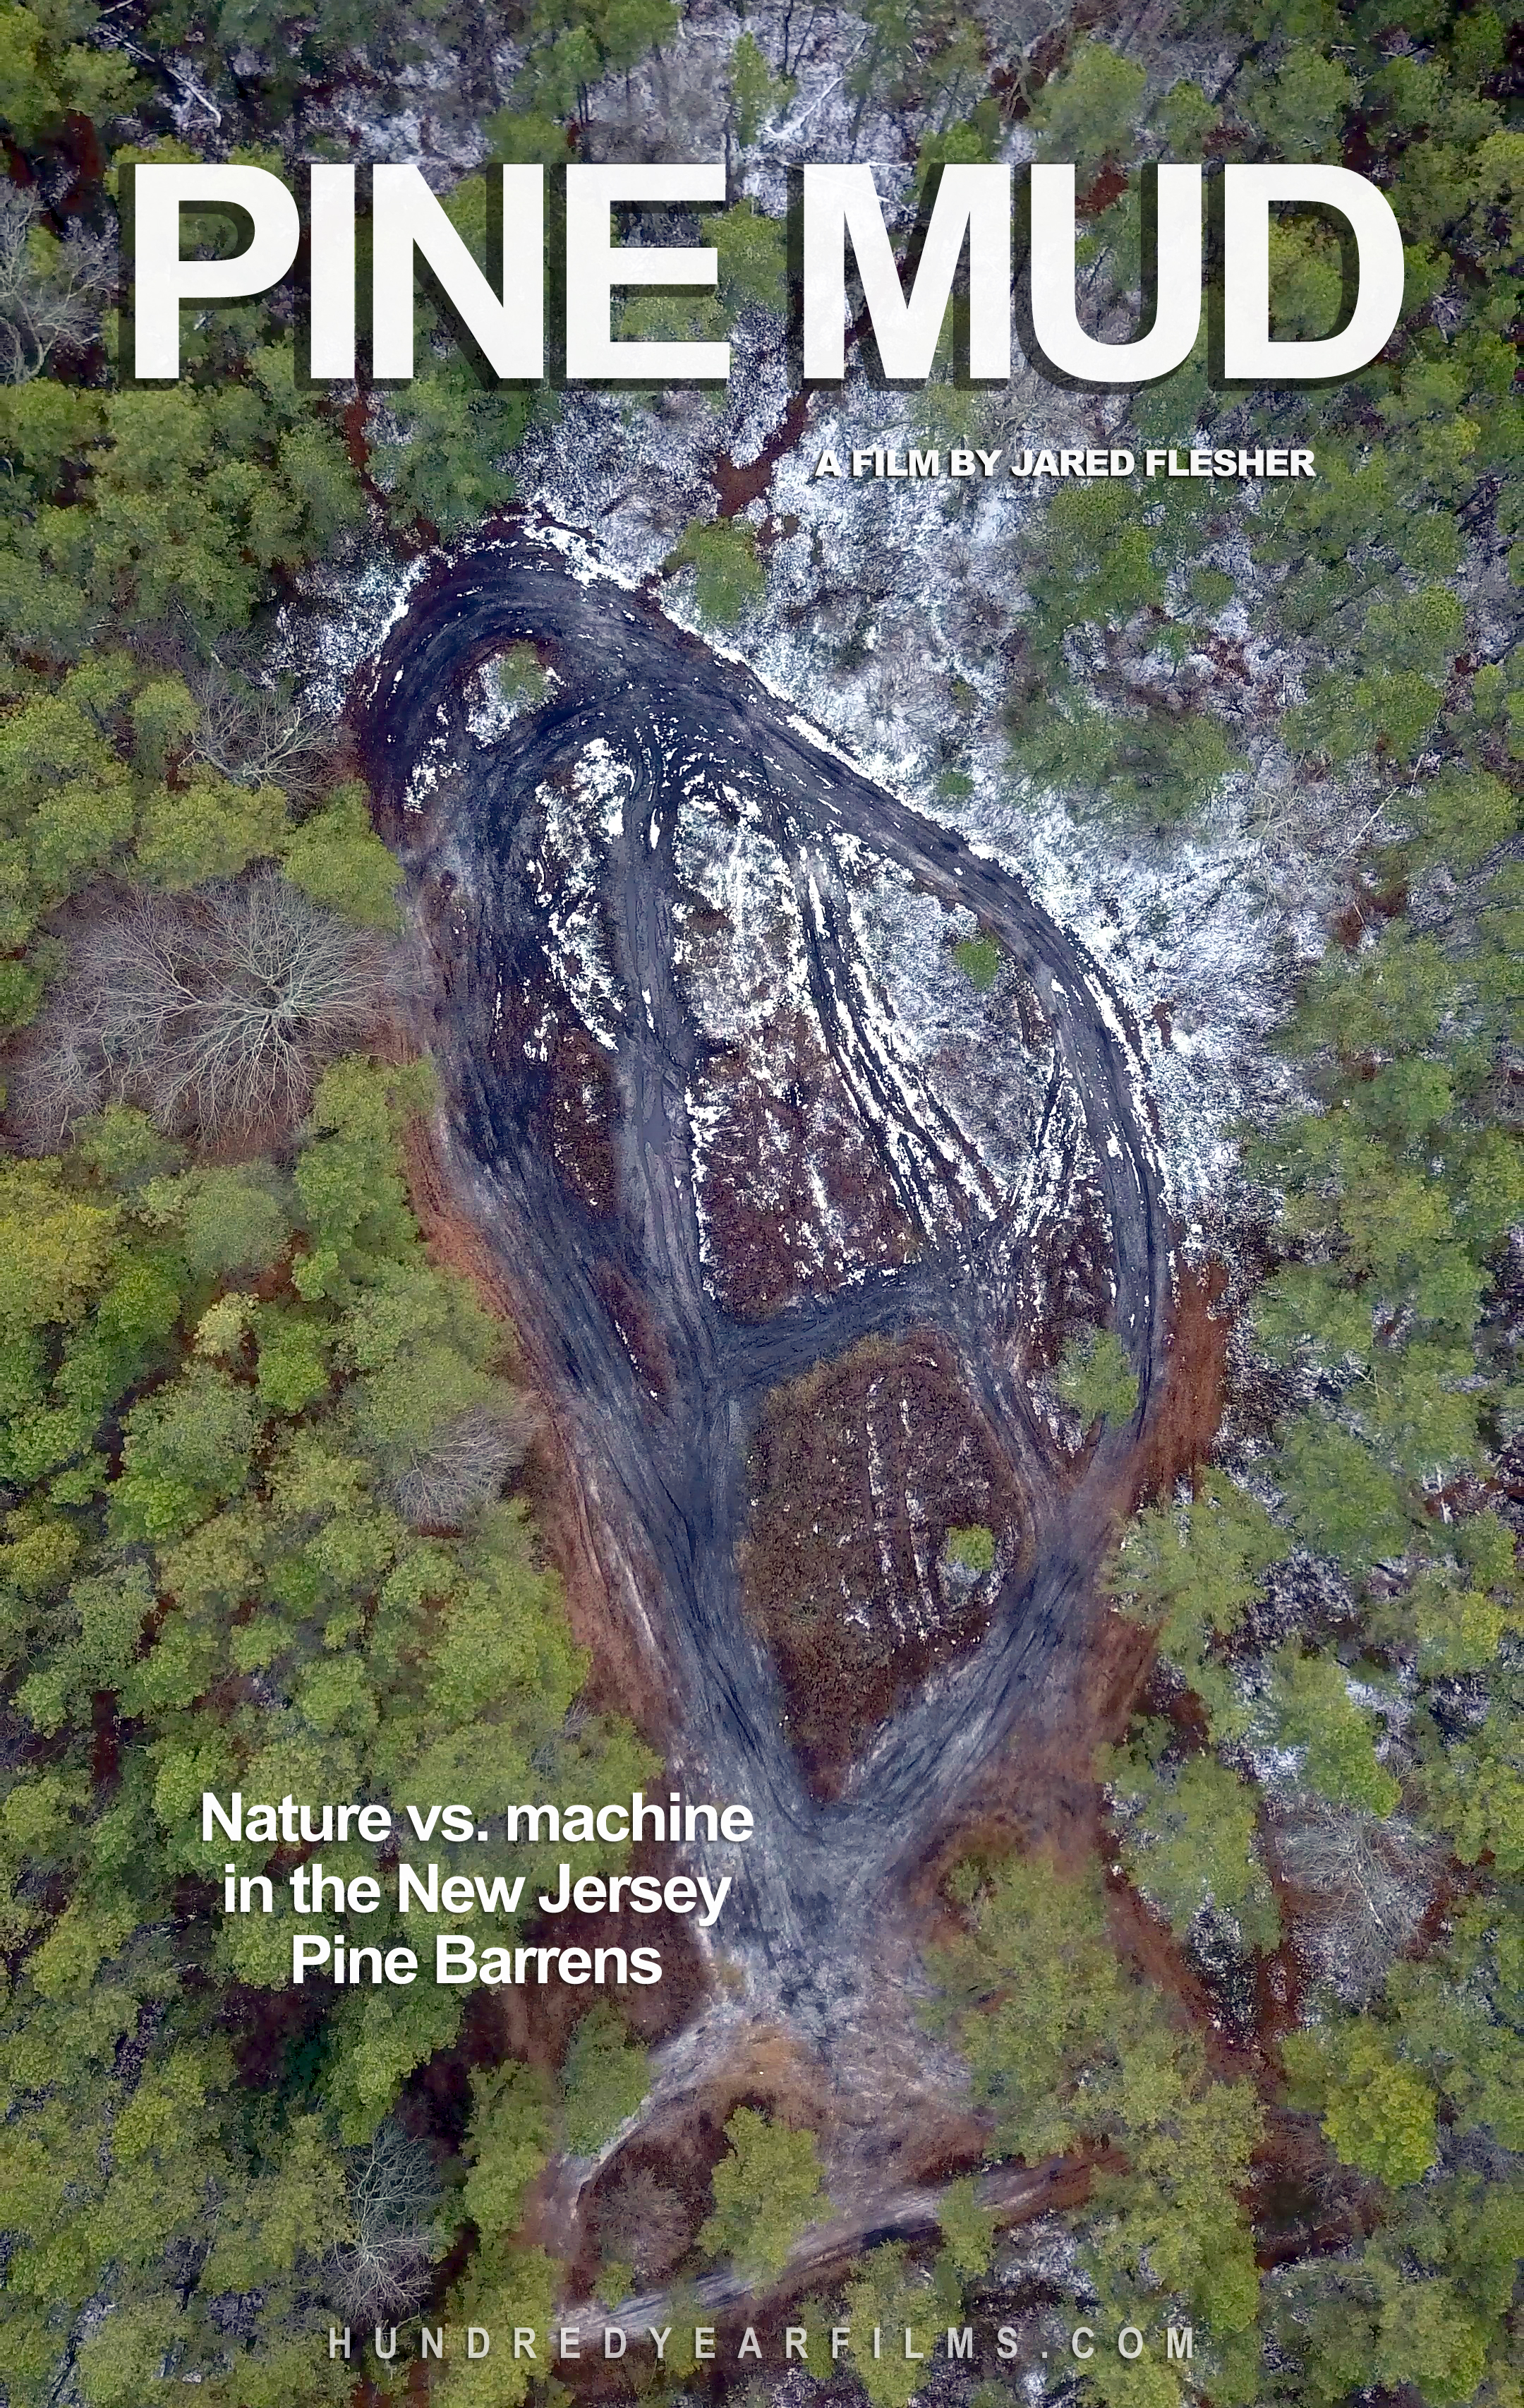 Pine Mud cover concept march 11.jpg